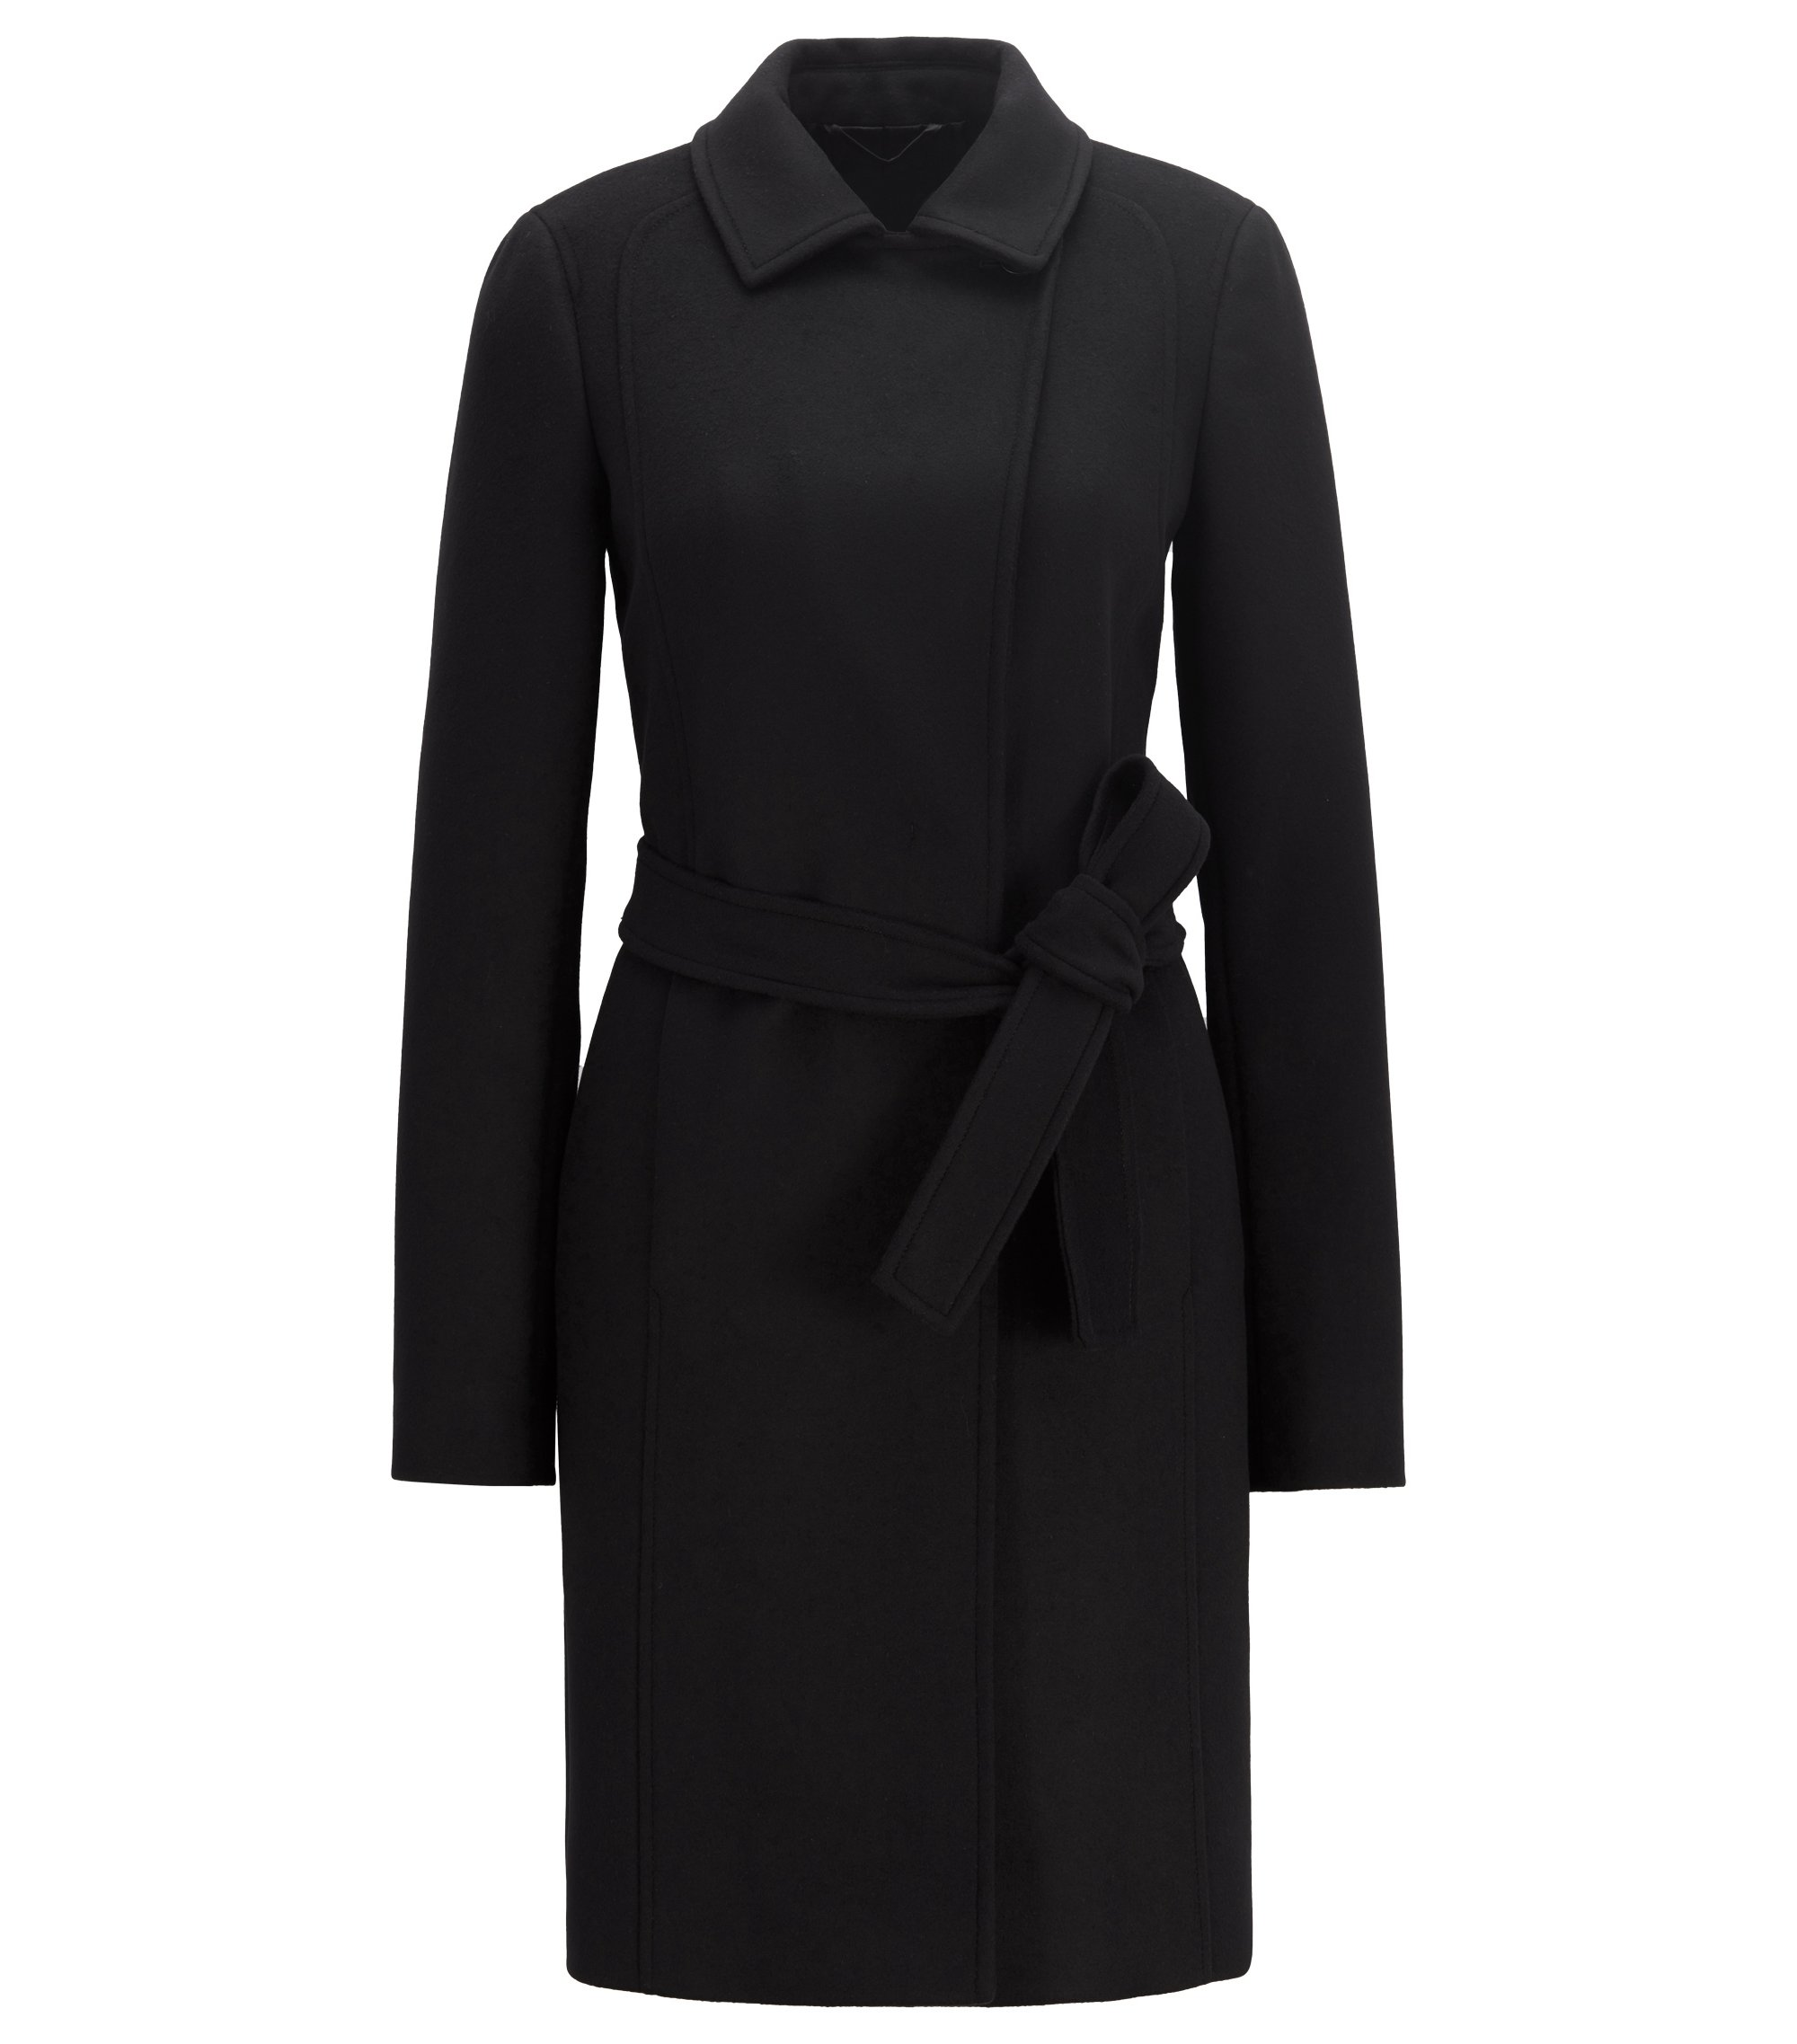 Wrap coat in Italian virgin wool and cashmere, Schwarz